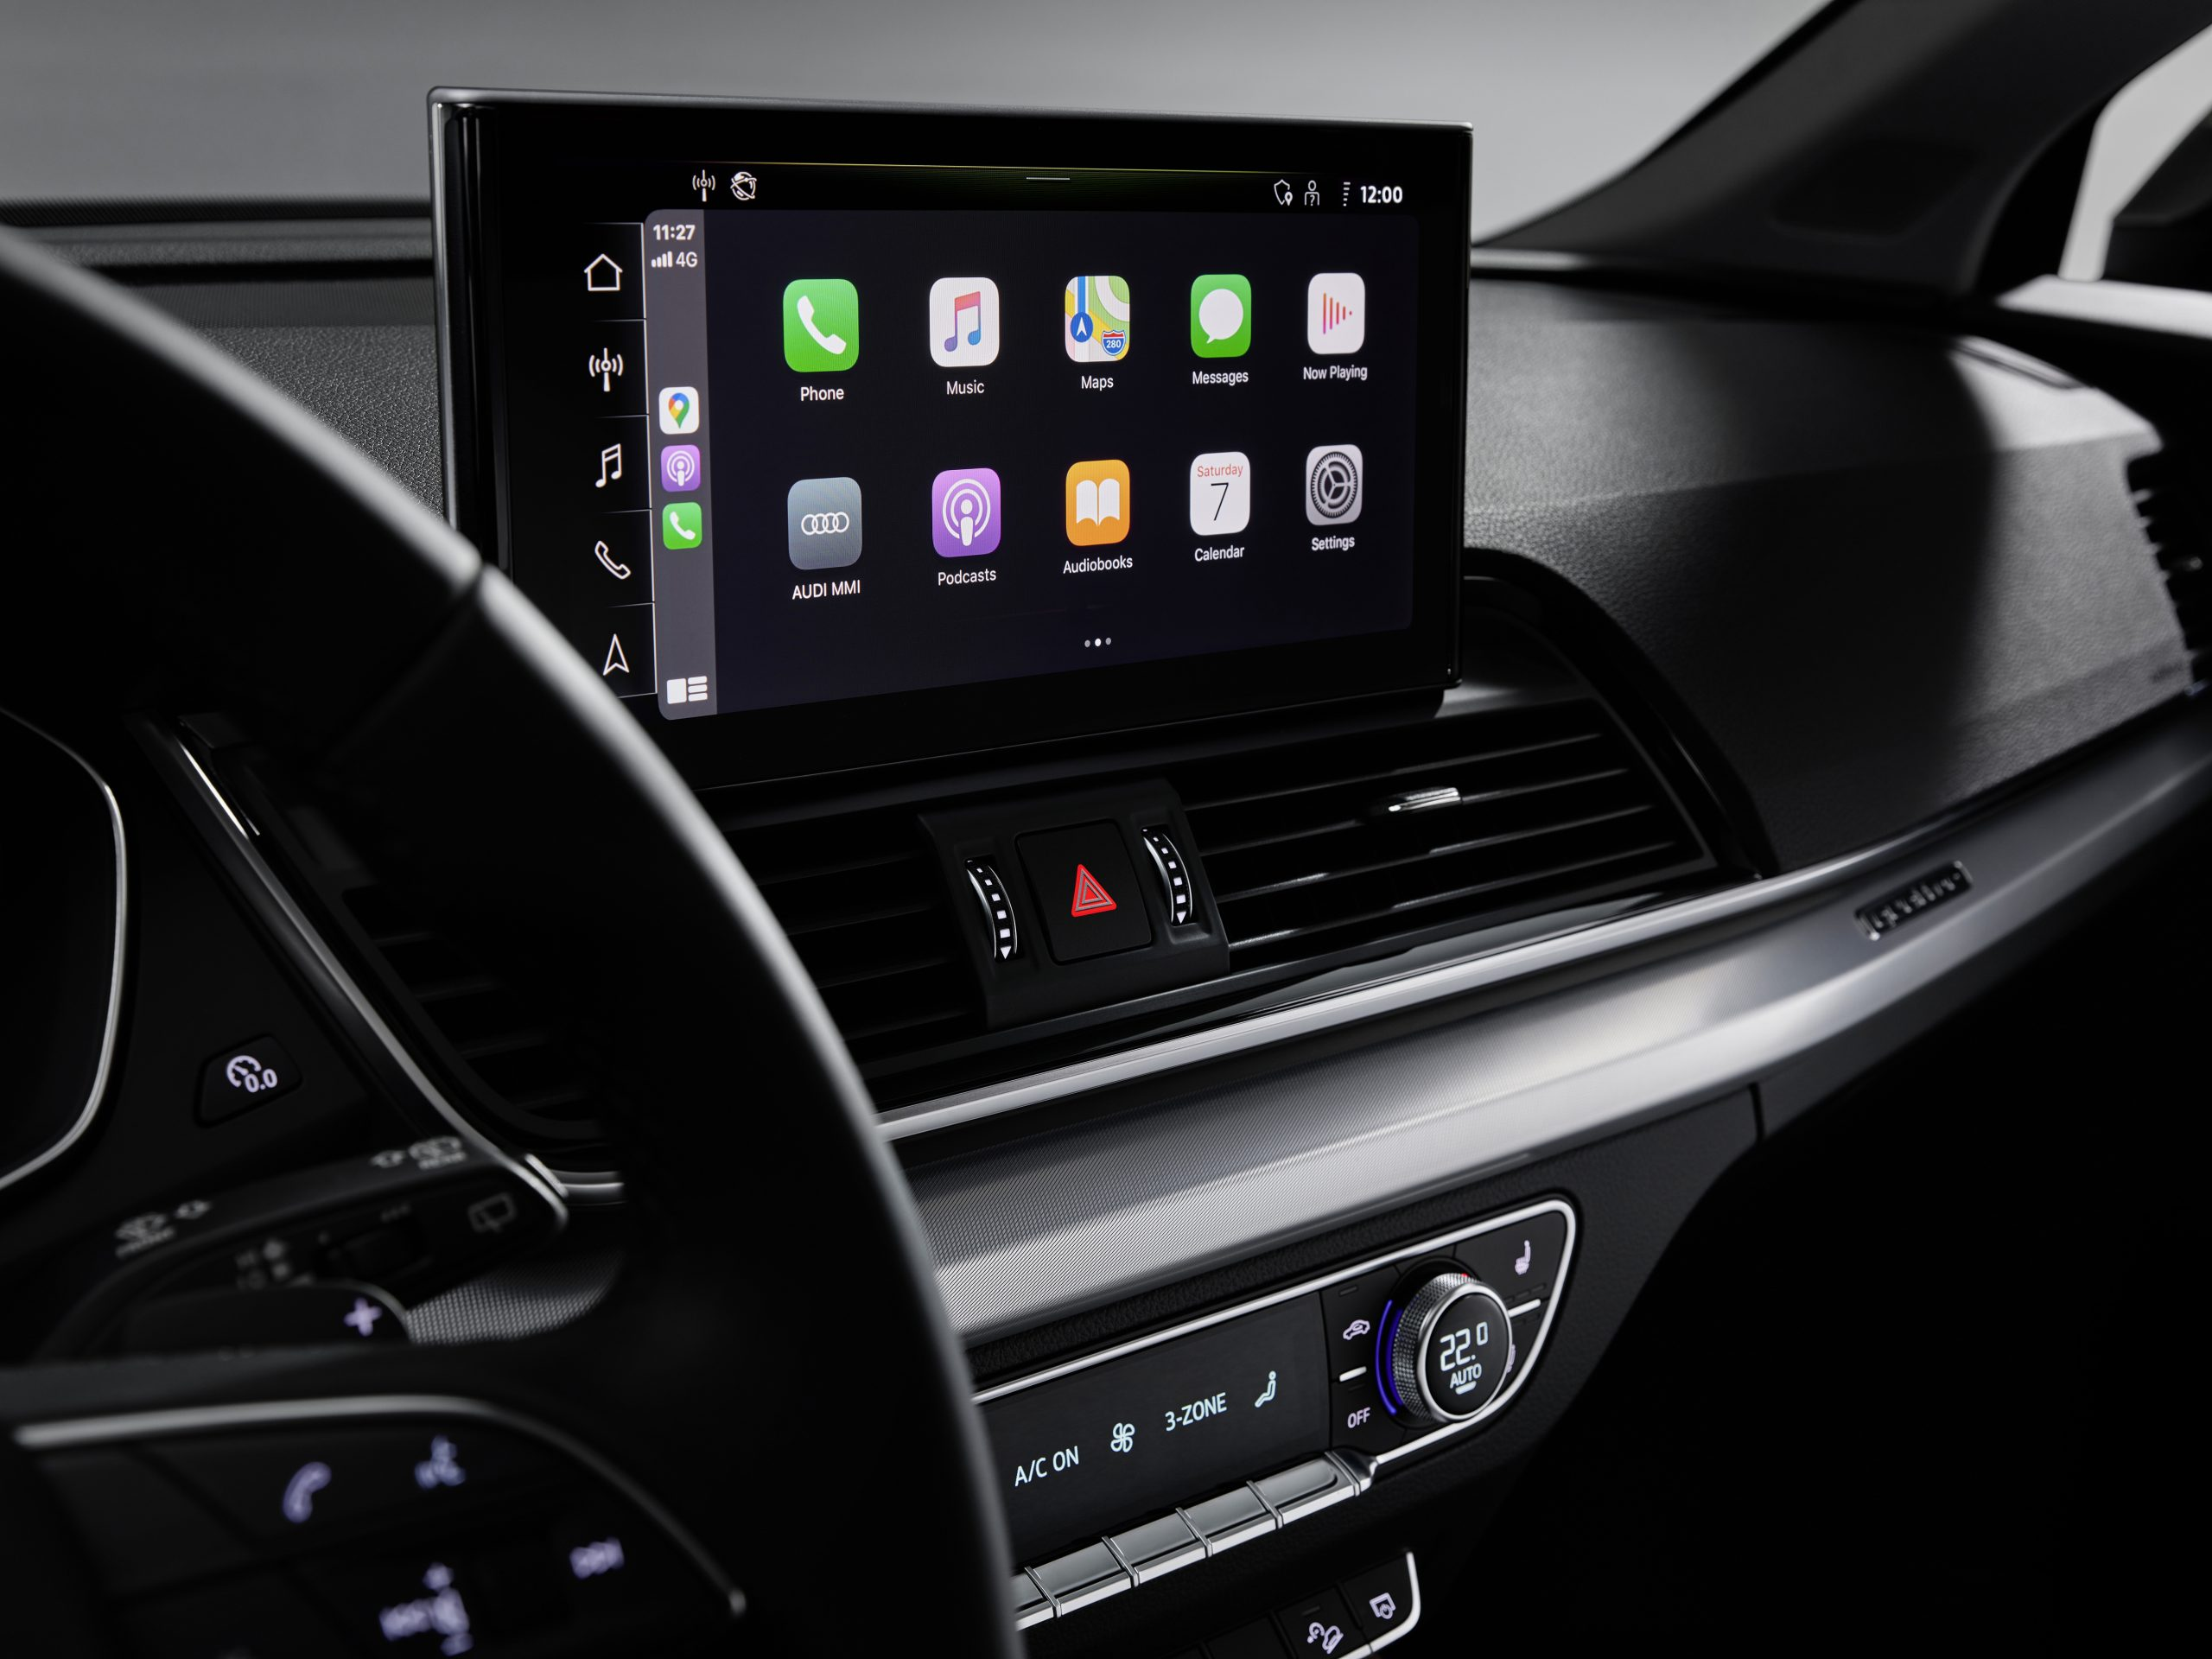 The 10.1-inch touchscreen unit